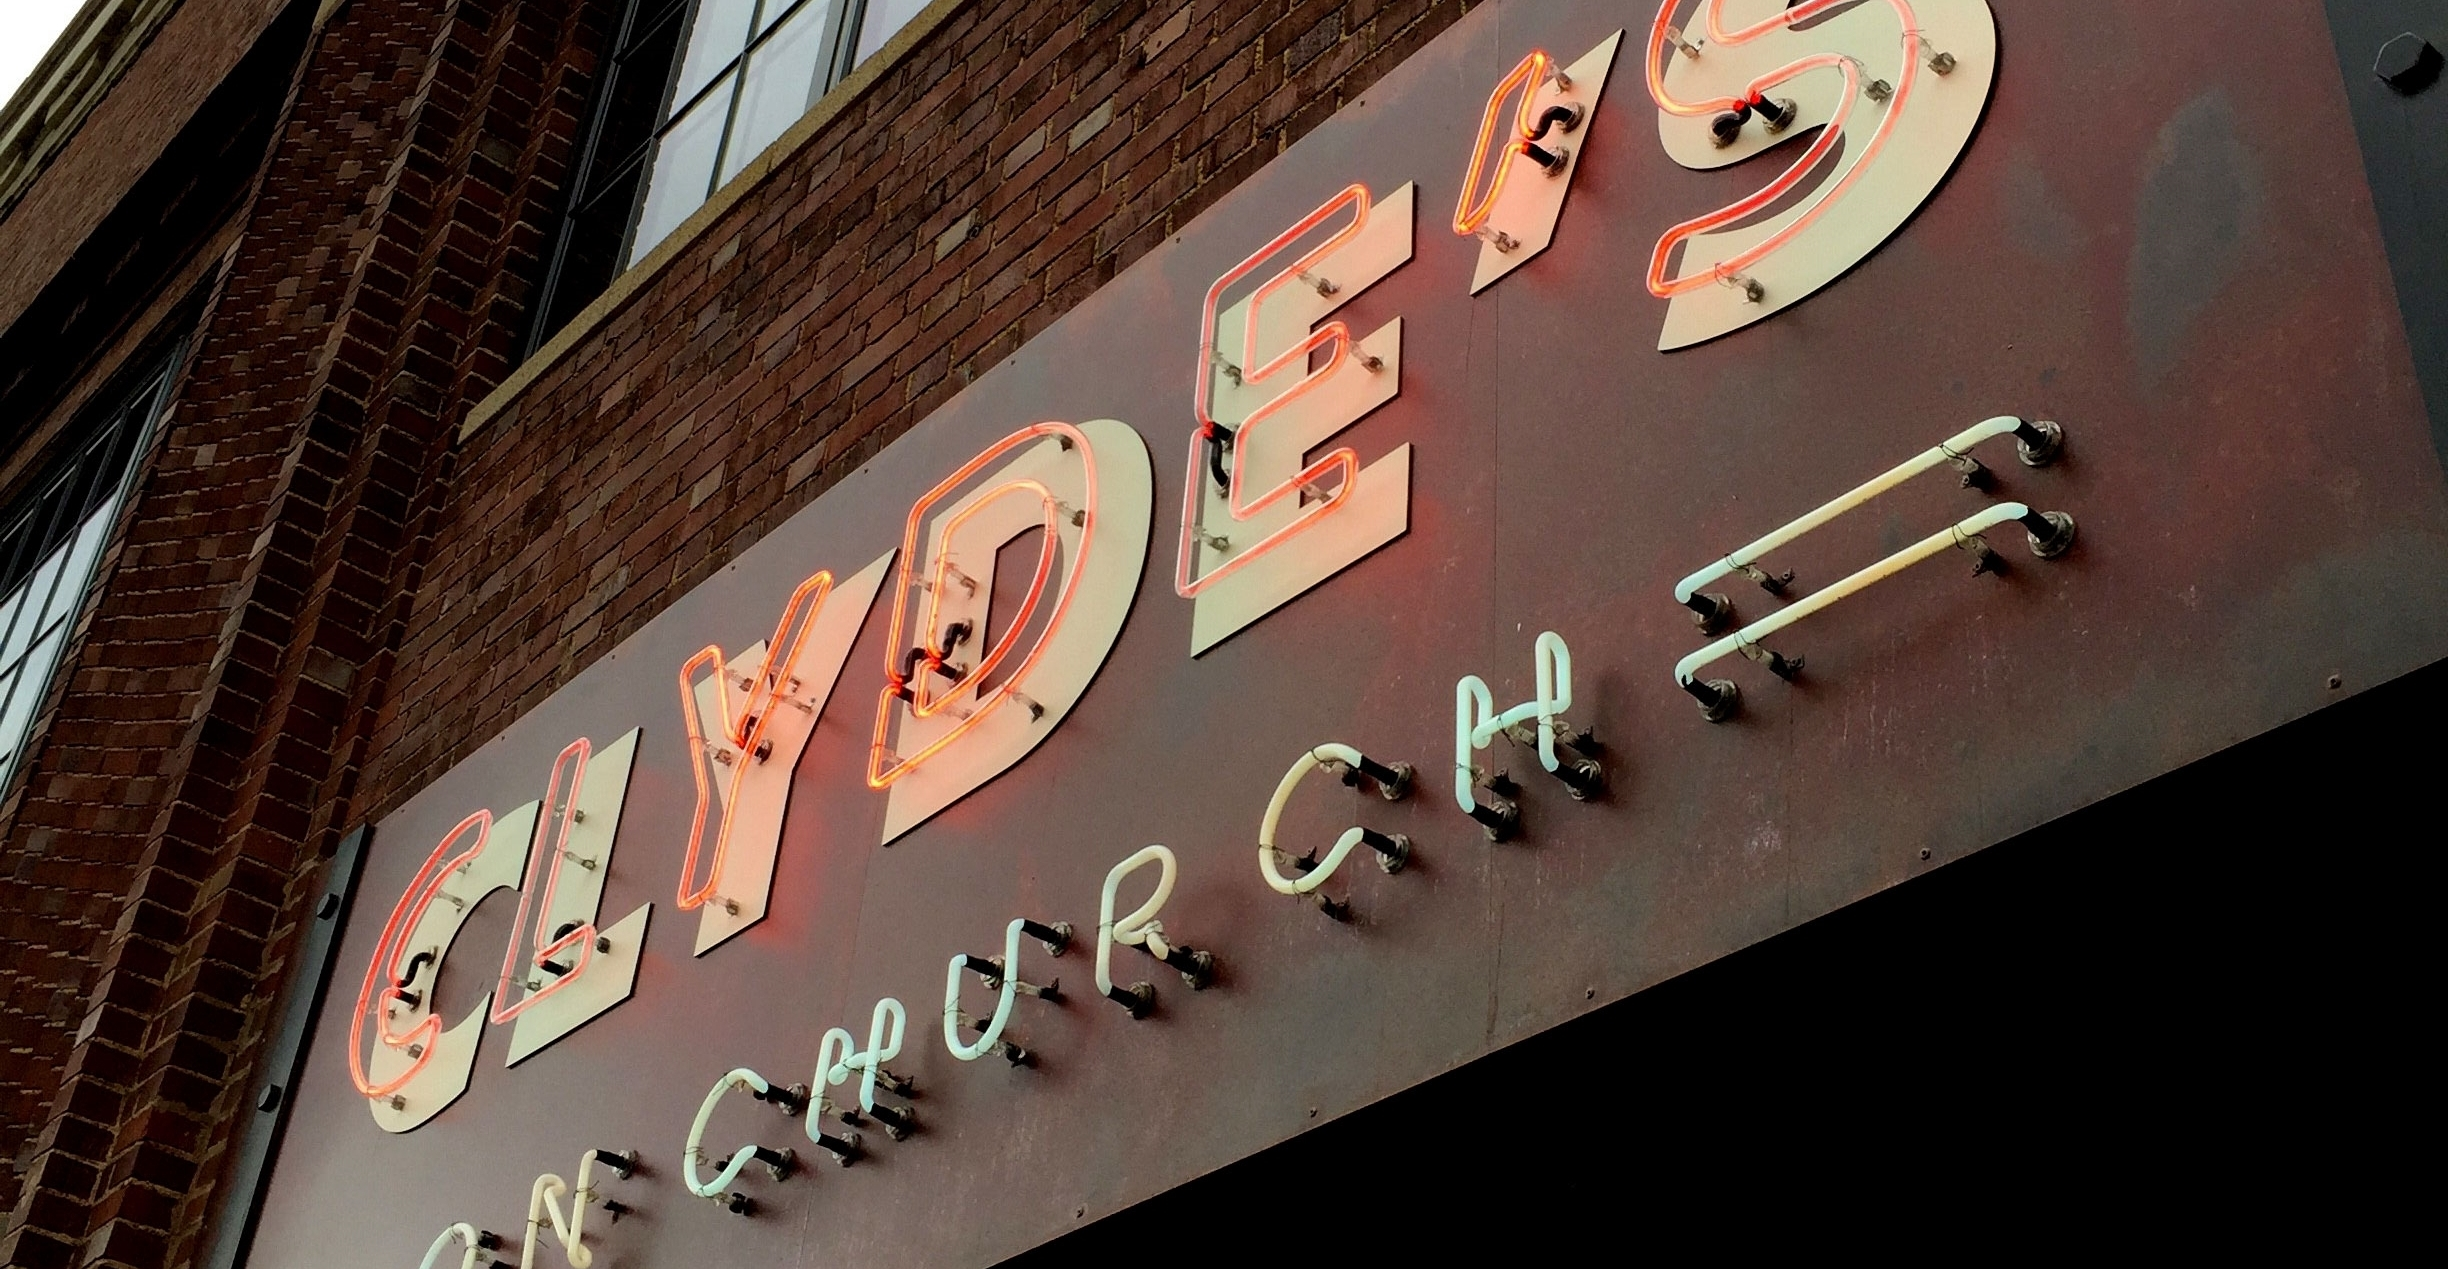 Clyde's on Church Logo Neon Signage